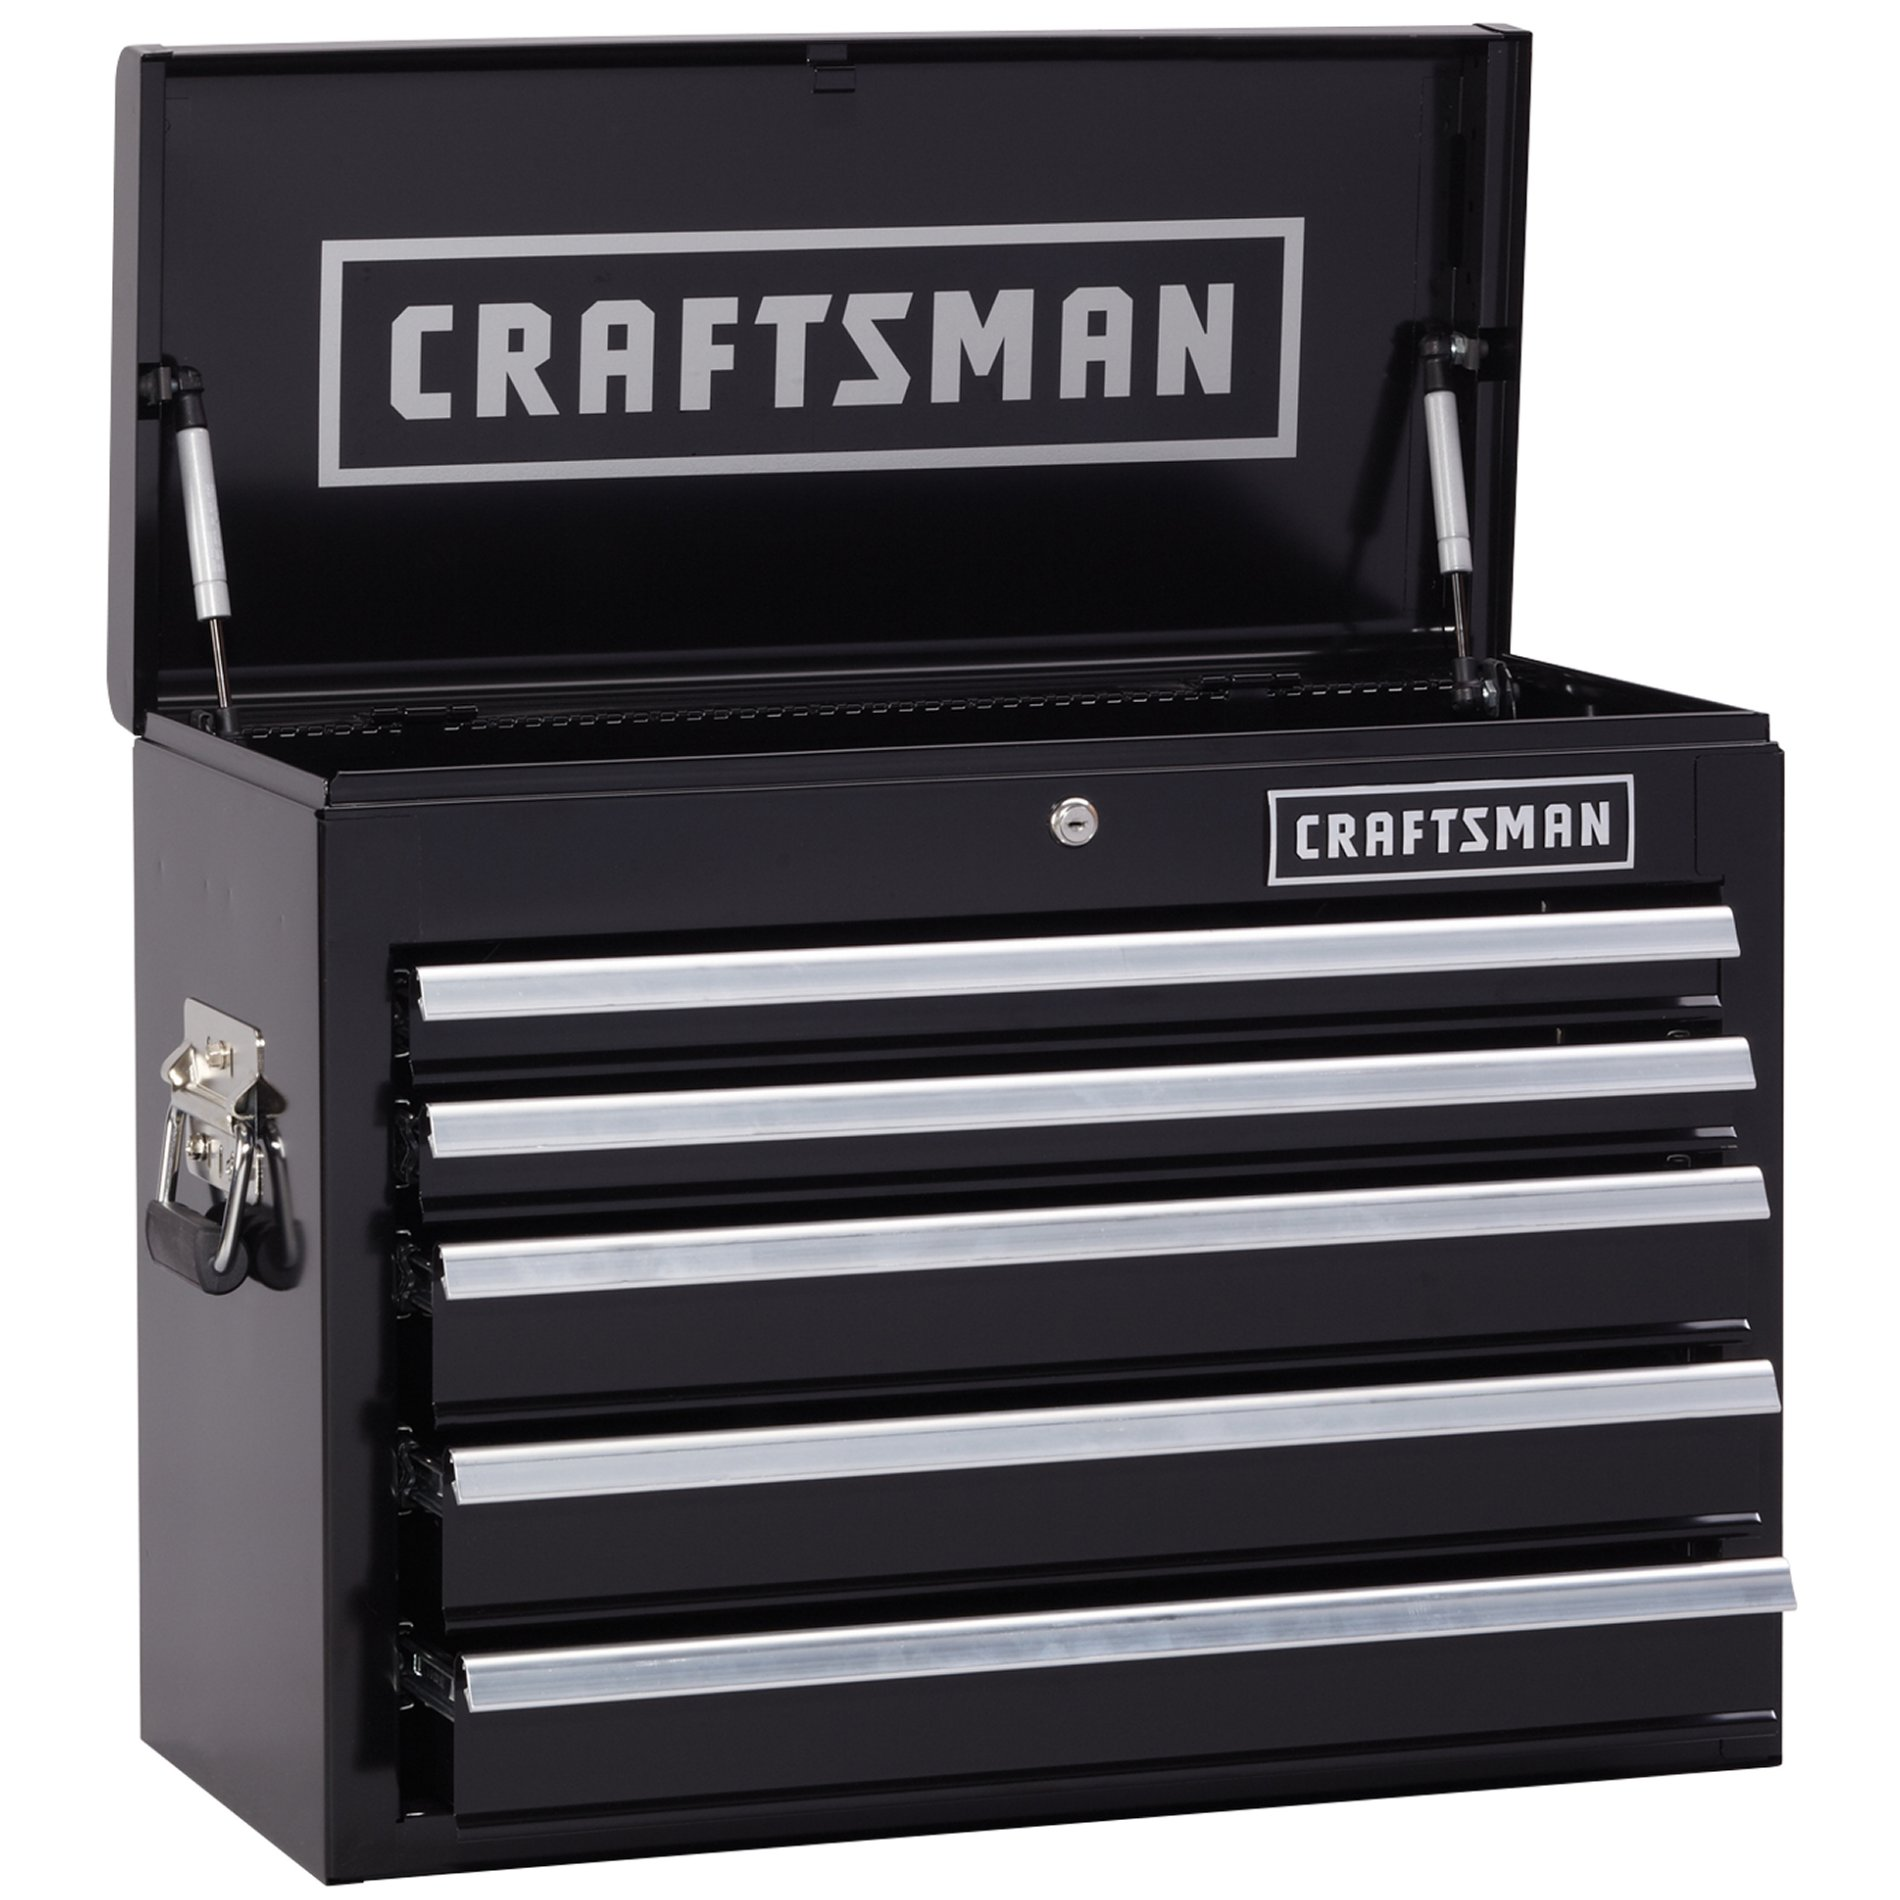 Craftsman 26 in. Wide 5 Drawer Heavy Duty Top Chest, Black